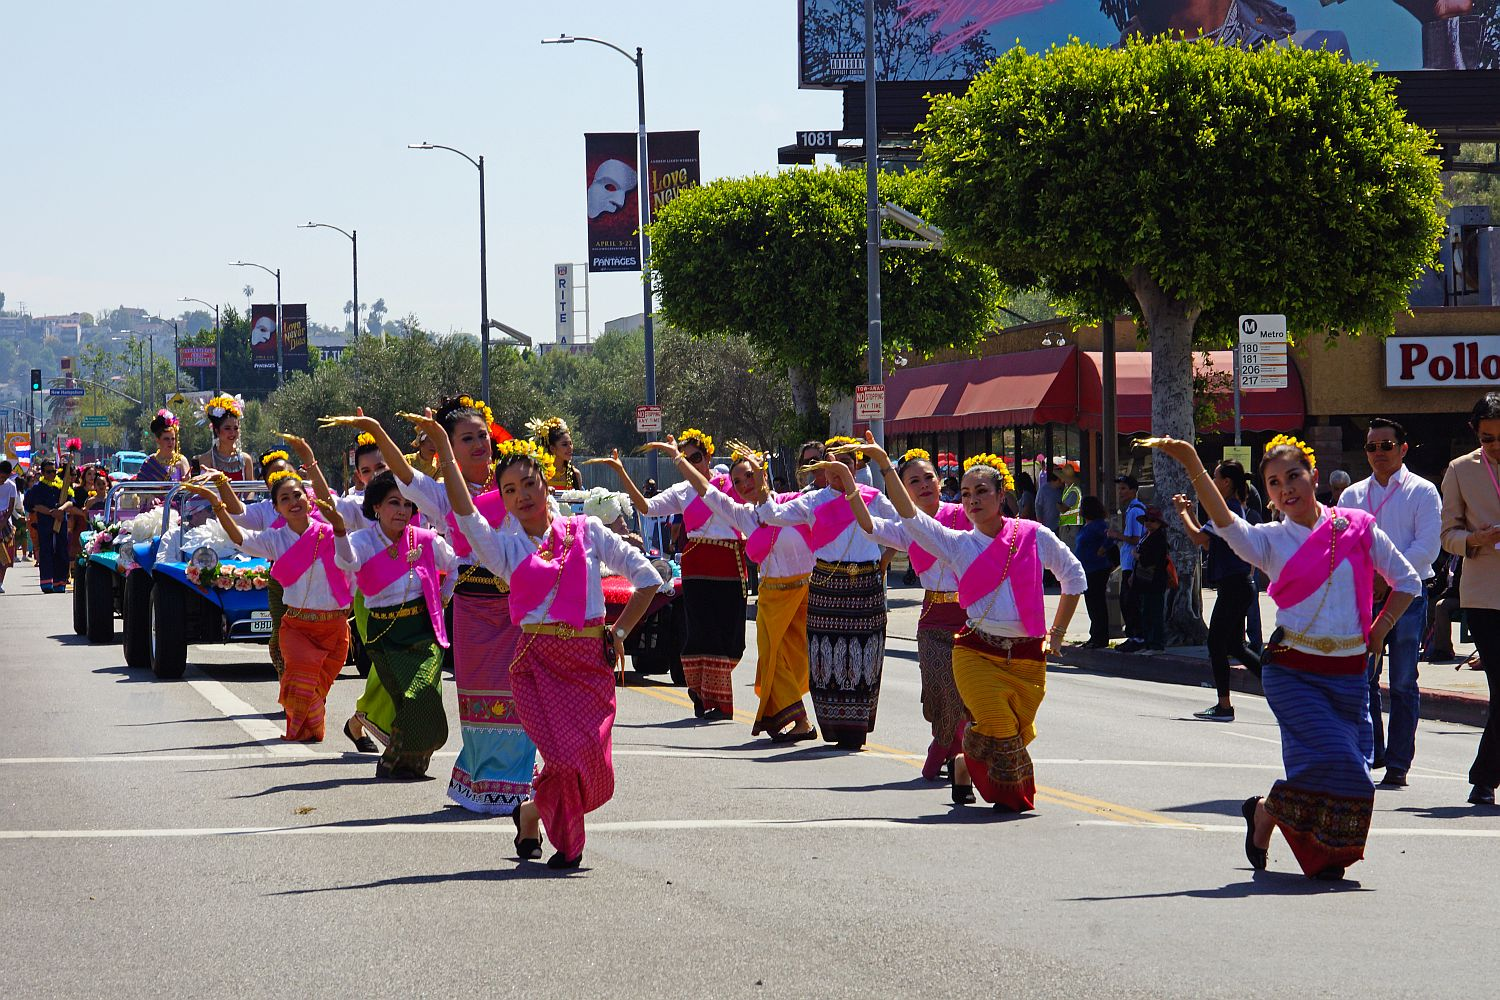 2018 Songkran Thai New Year Festival Parade in Los Angeles